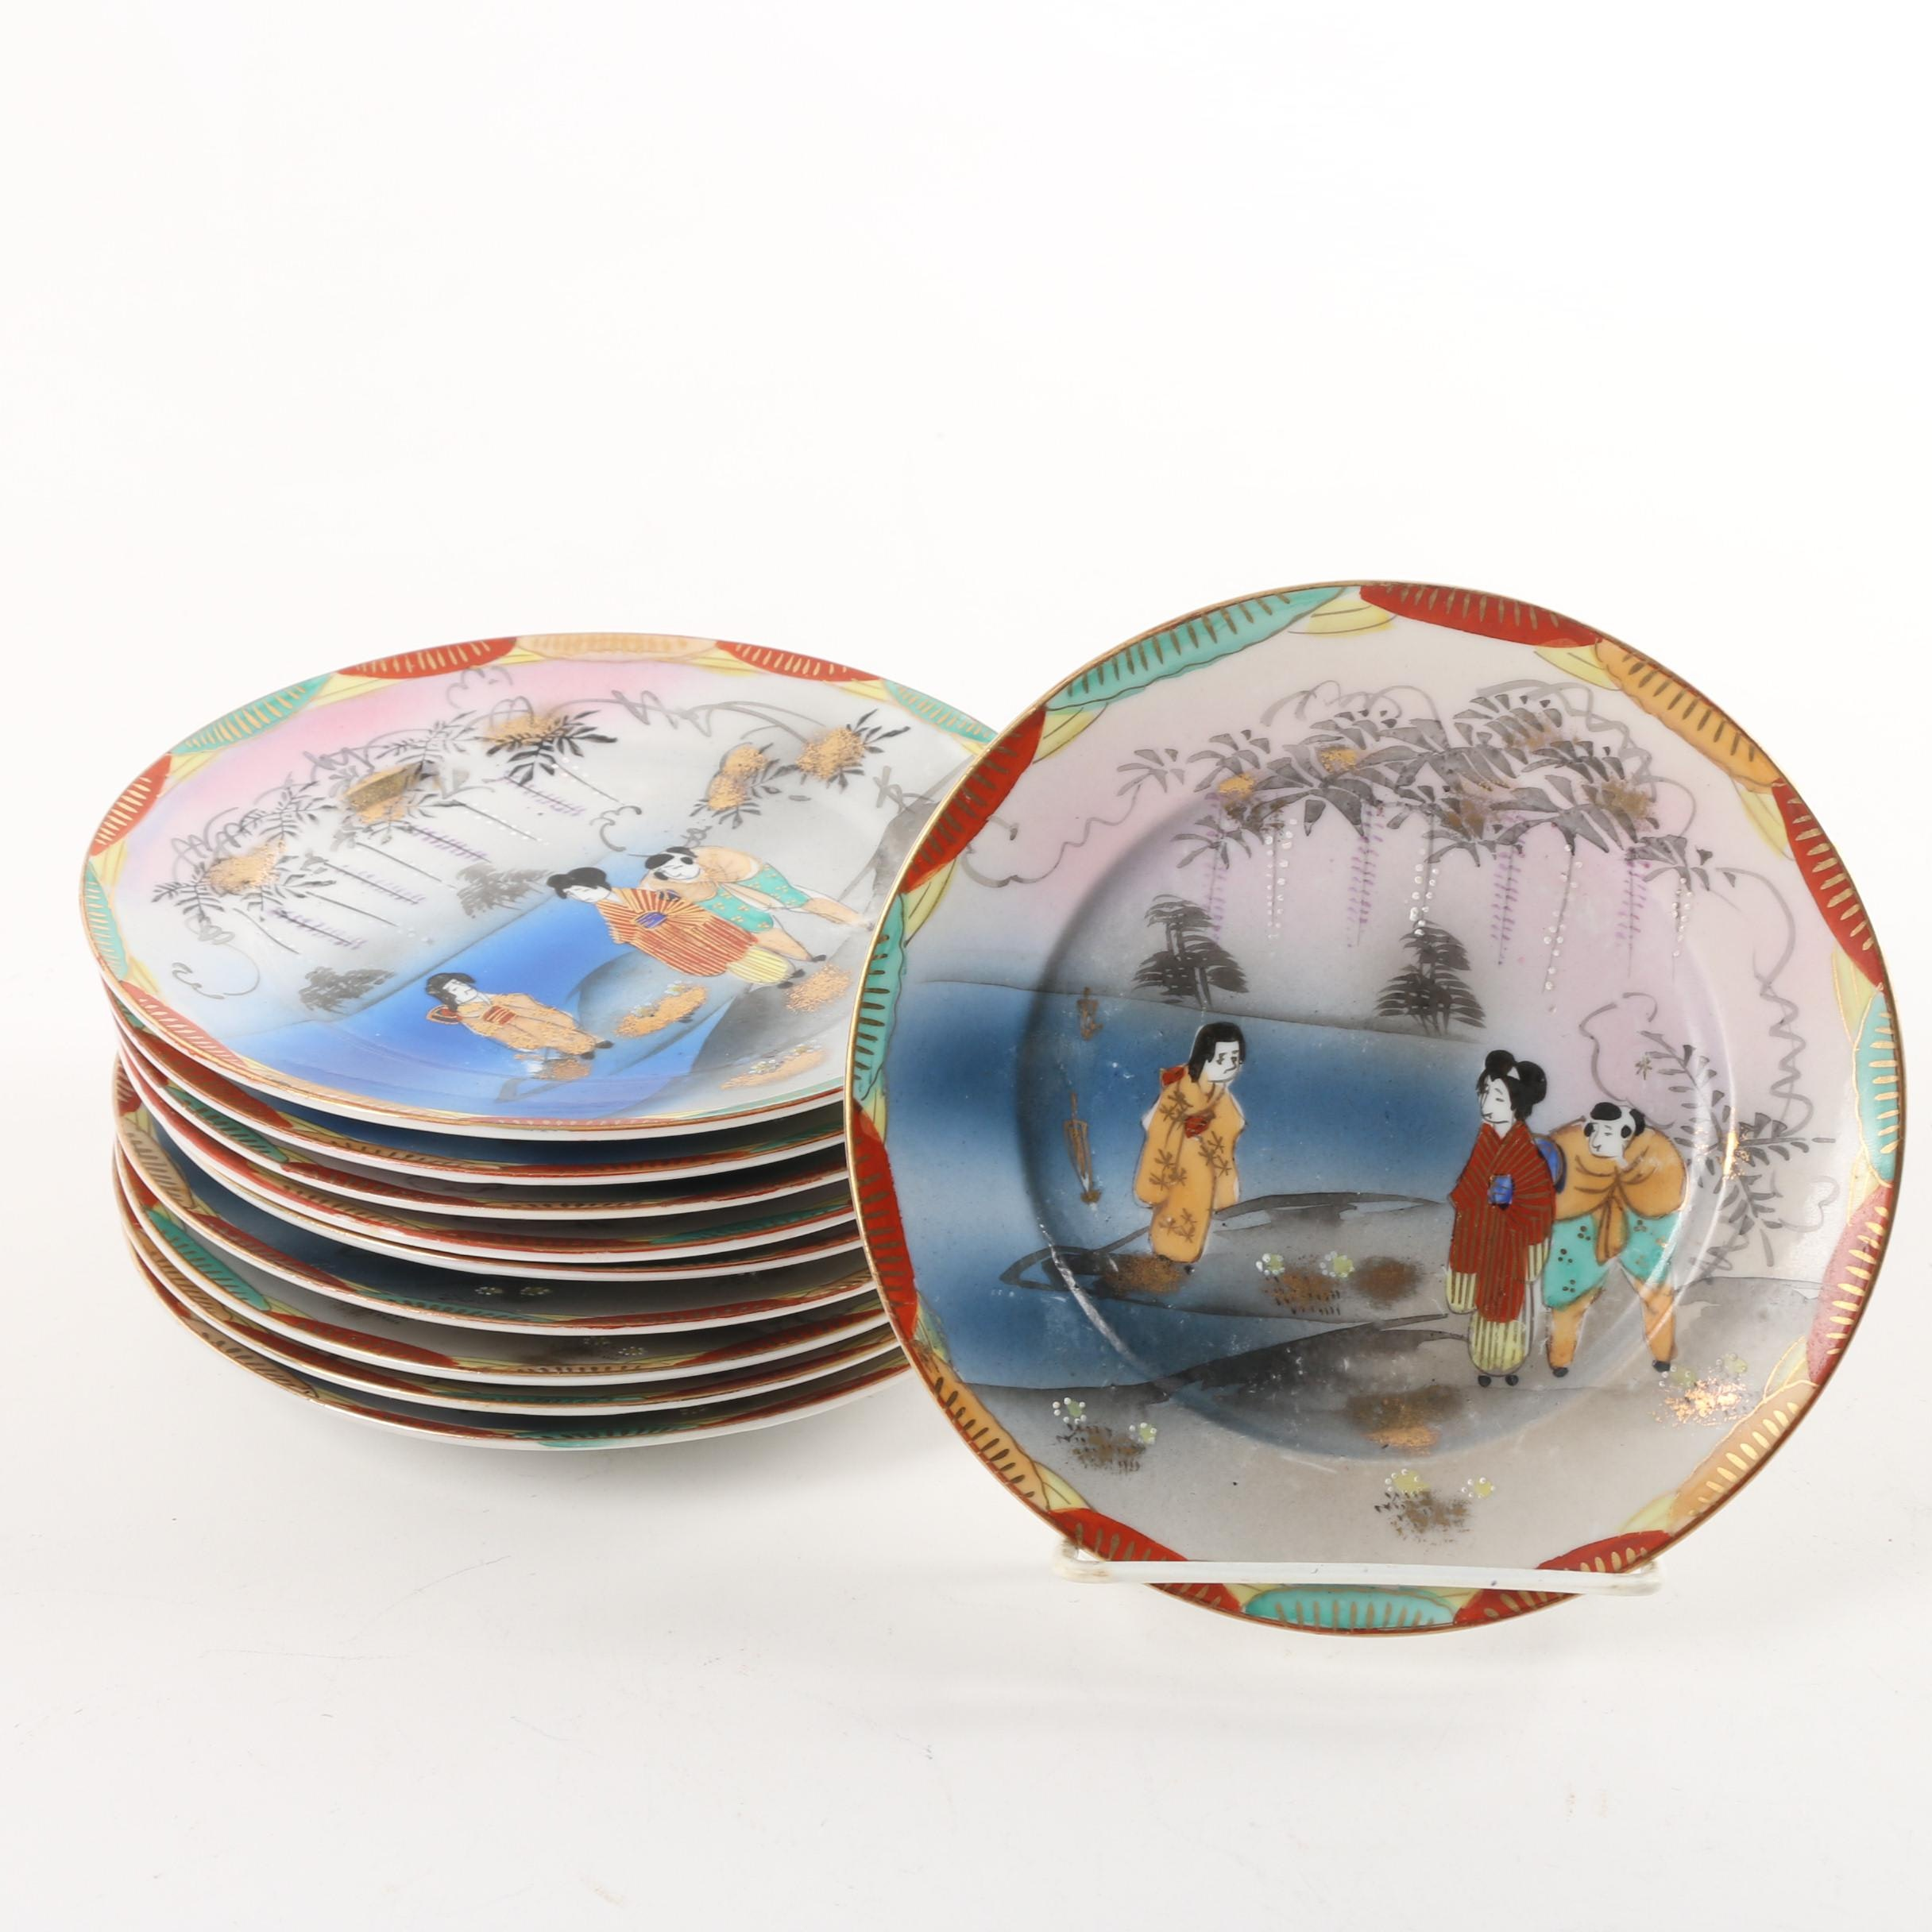 Hand-Painted Japanese Porcelain Plates